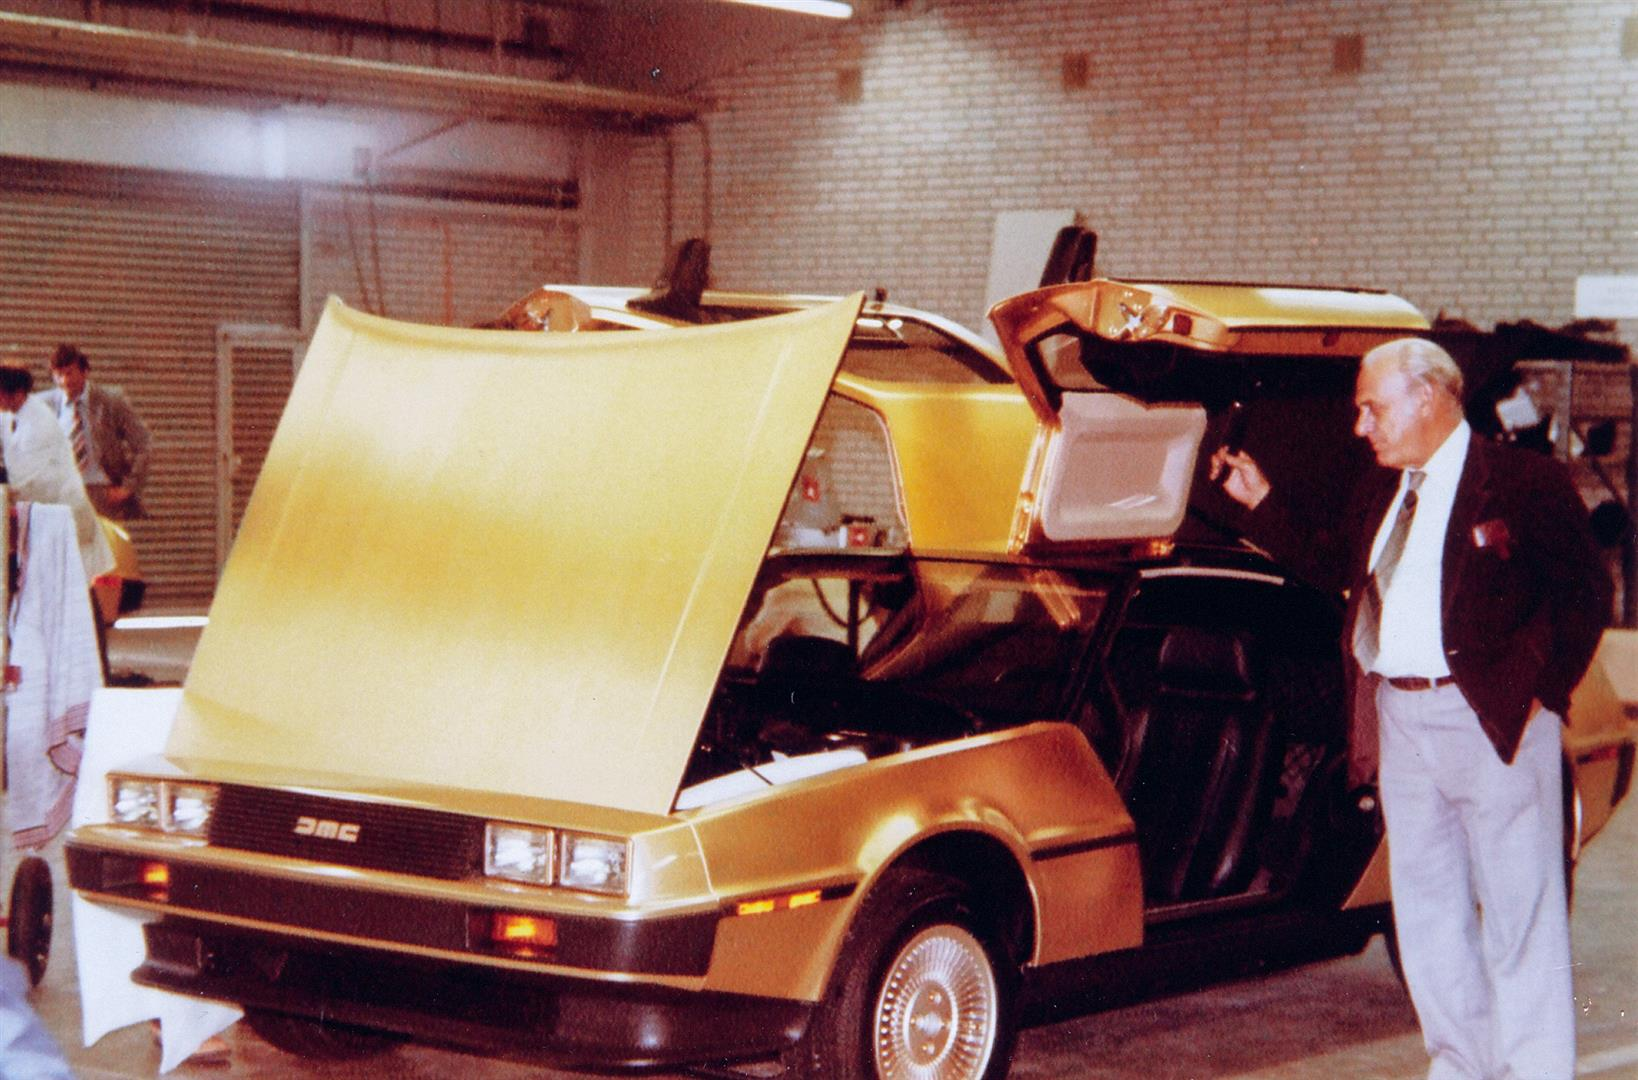 Gold car assembly in the EVP crib, with assembly team leader Dick Kendall looking on | DeLoreanDirectory.com